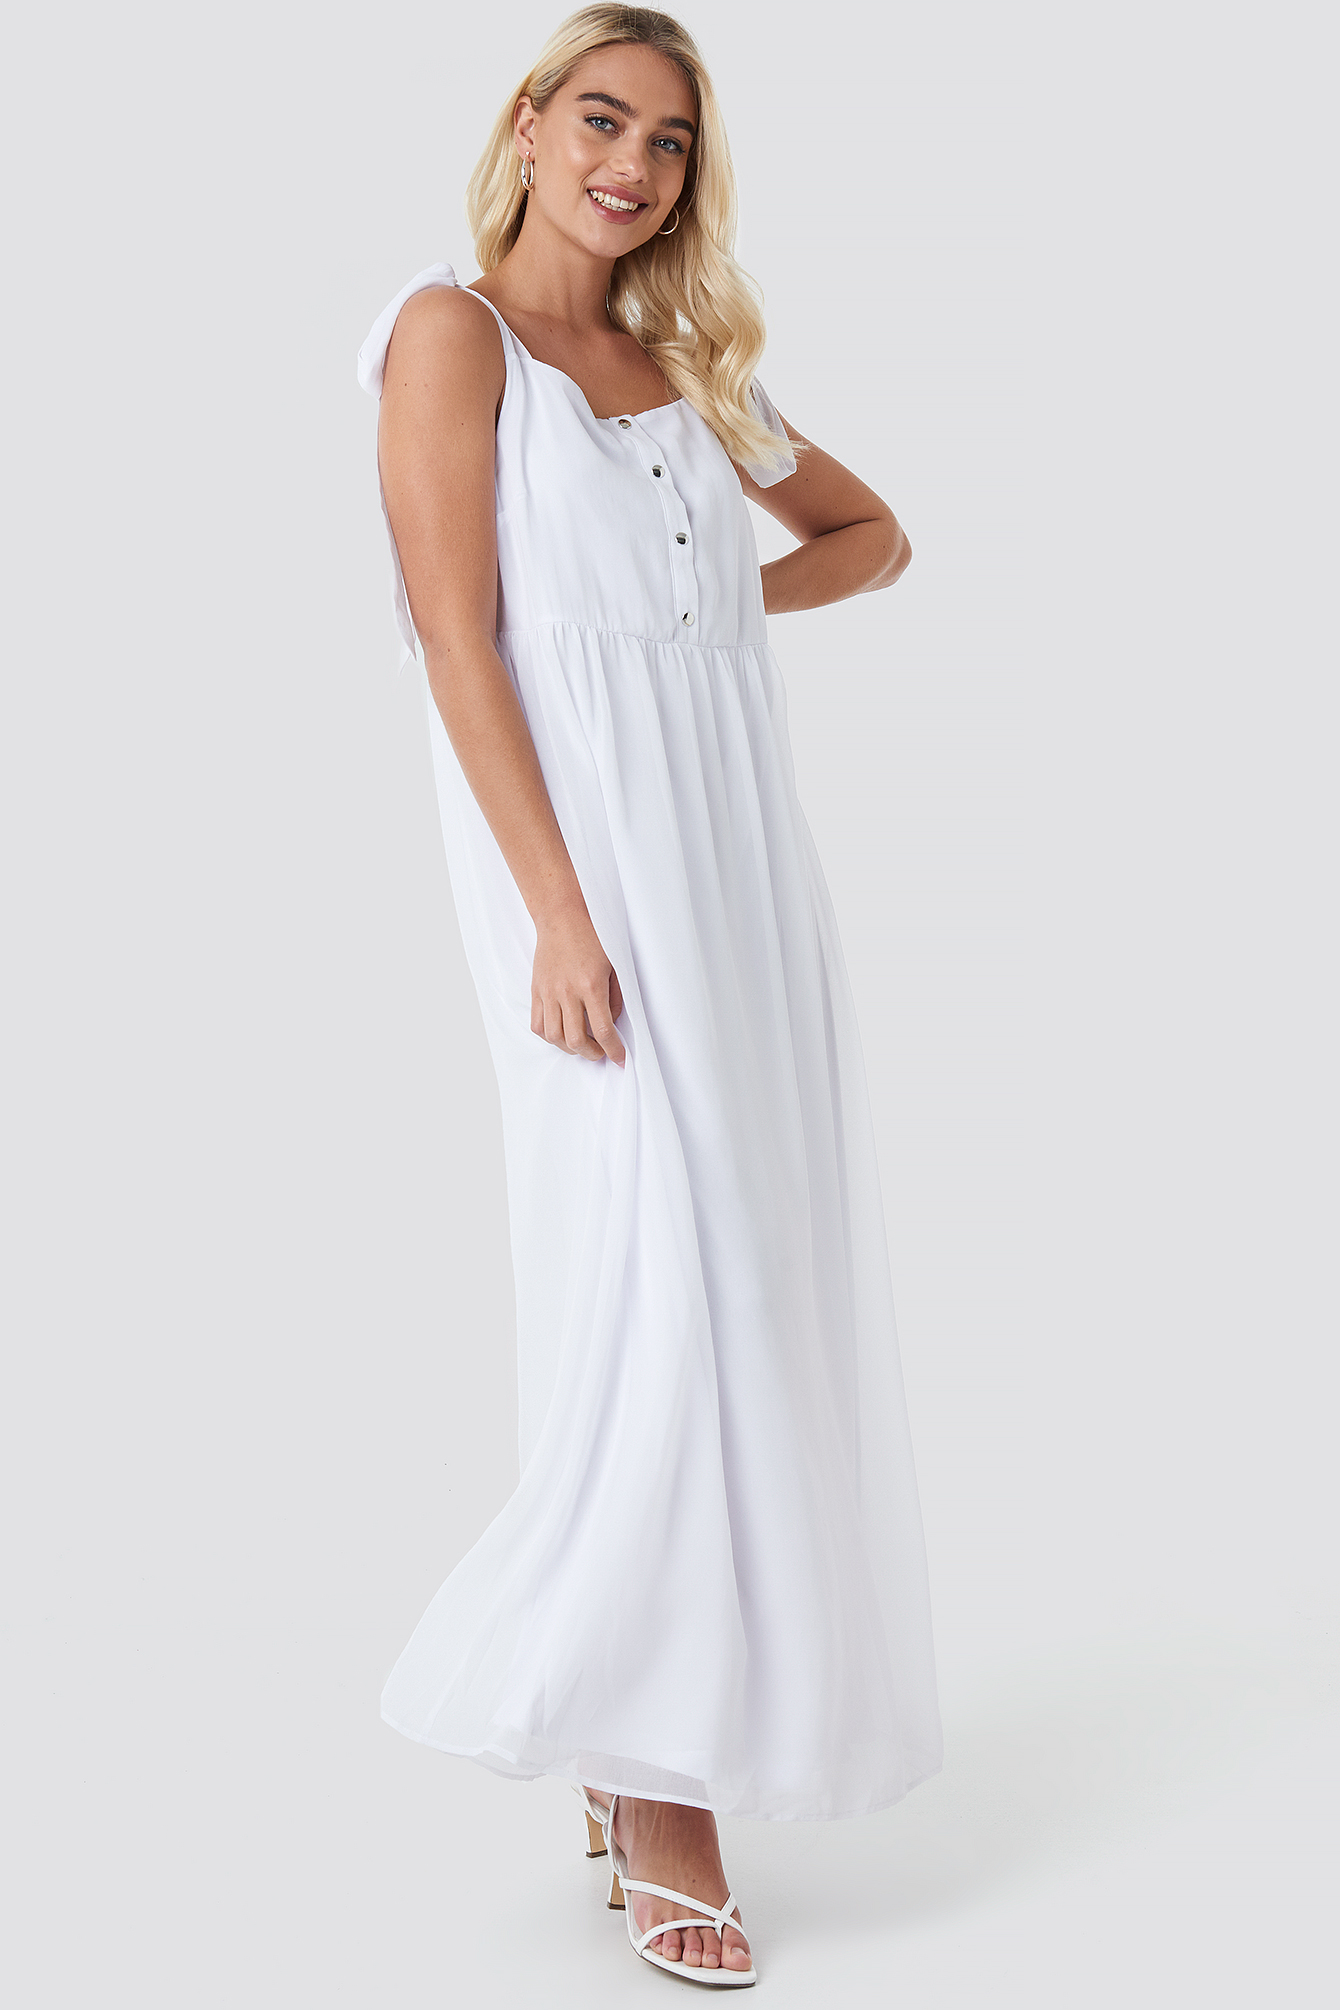 White Tie Shoulder Maxi Dress